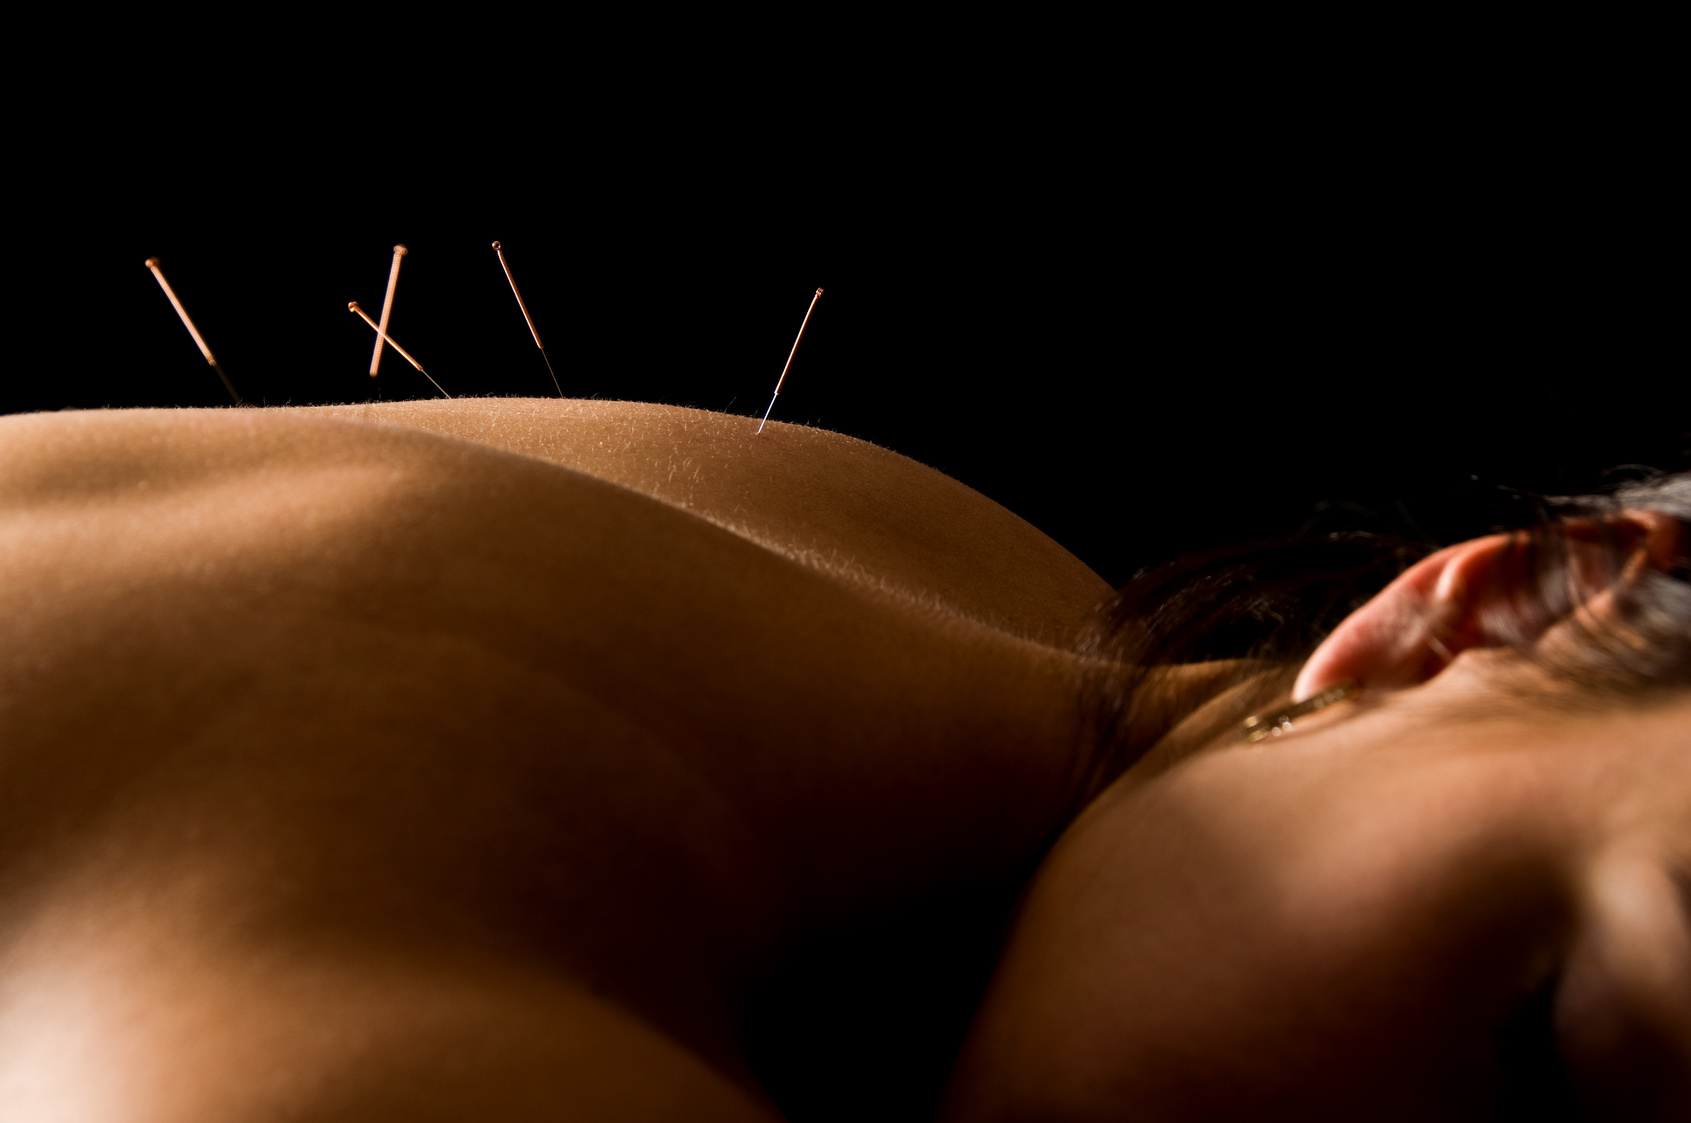 Acupuncture – Stimulates Proper Flow of Energy